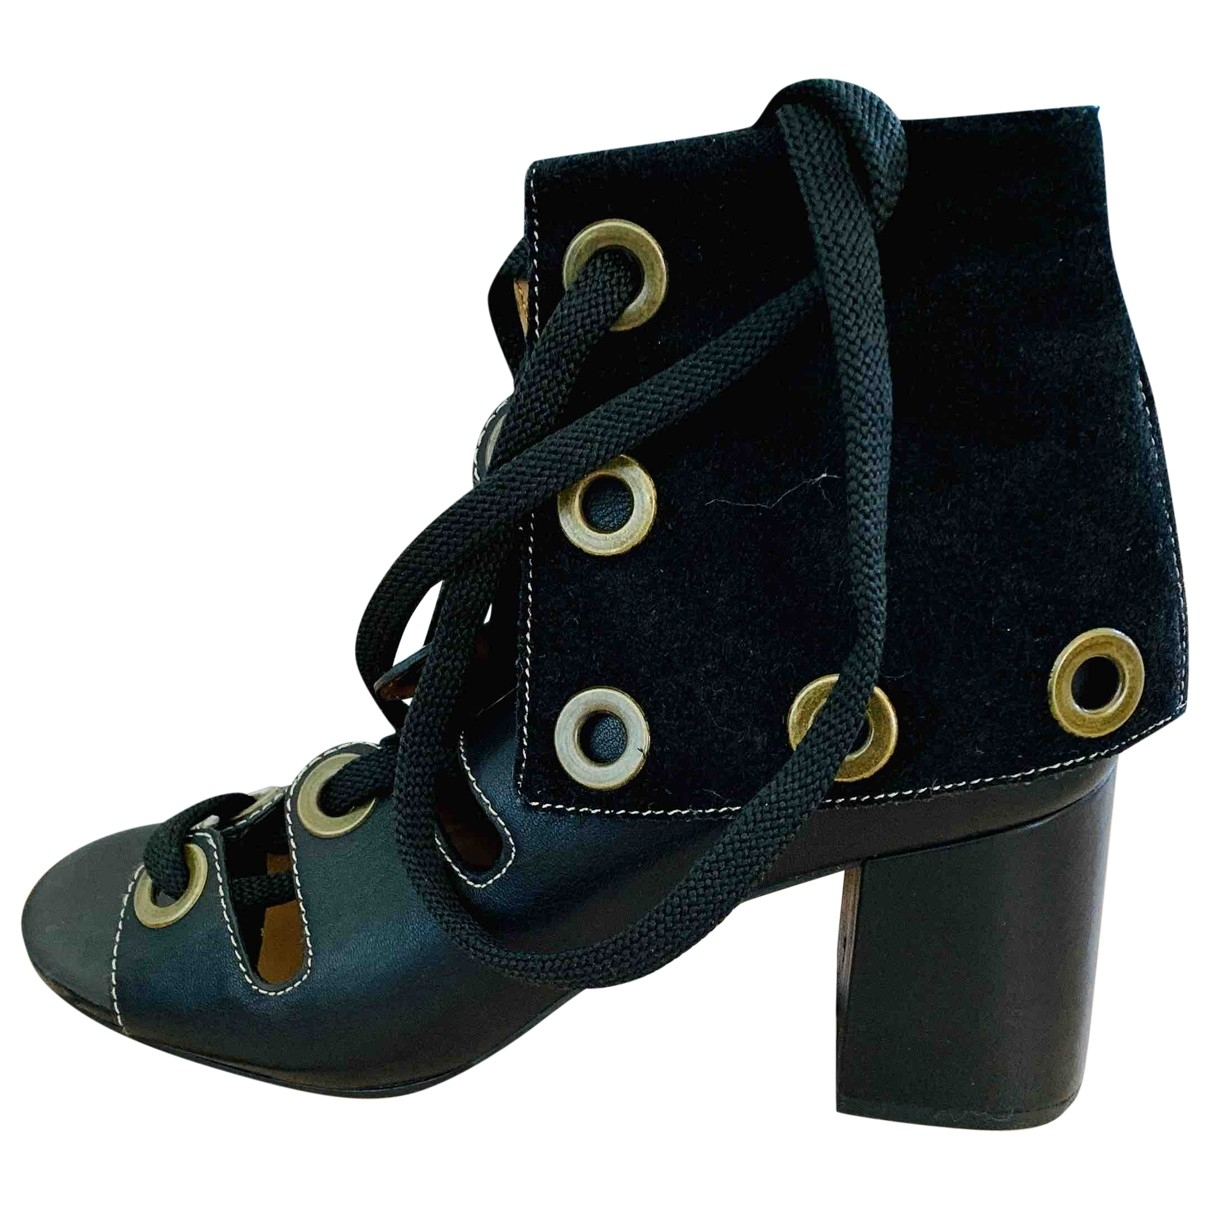 See By Chloé \N Black Leather Sandals for Women 40 EU